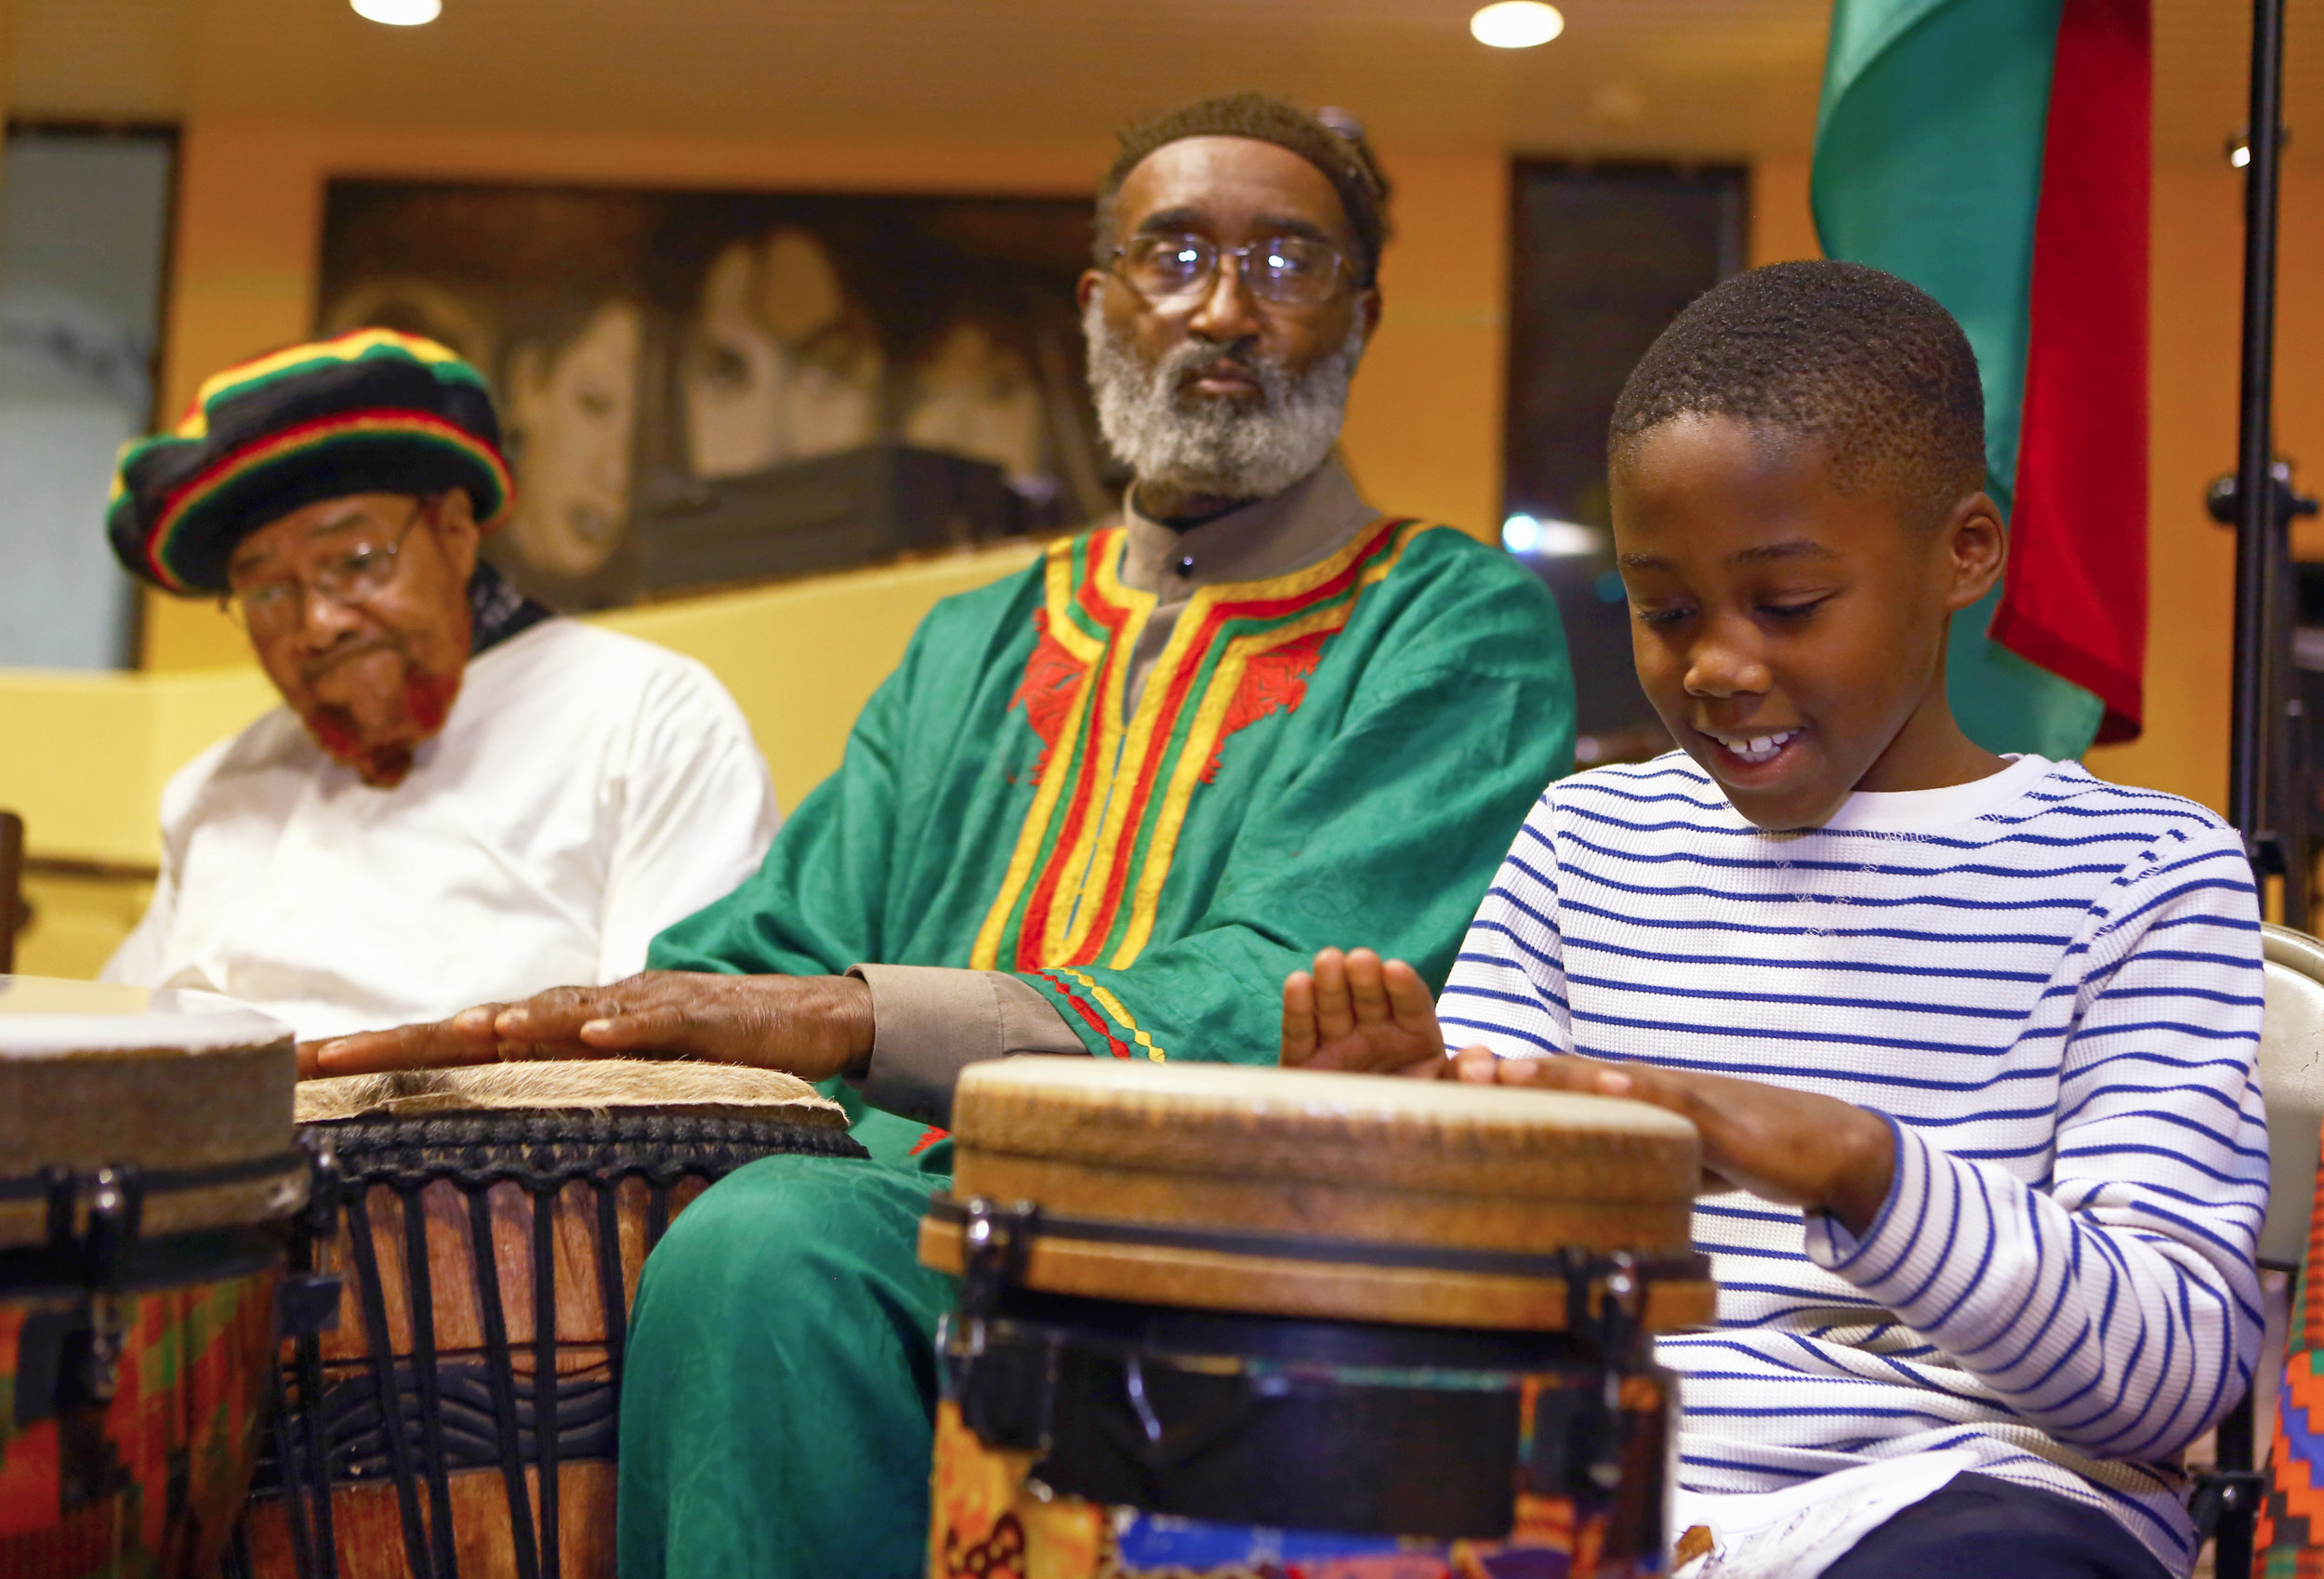 Tariq Harris, 9, of Toledo, right, plays a djembe with Kewape, center, and Imam El Allizar, left, during the first night of Kwanzaa celebrating umjoa, or unity, at the Fredrick Douglass Community Center in downtown Toledo, Oh. on Monday, Dec. 26, 2016.